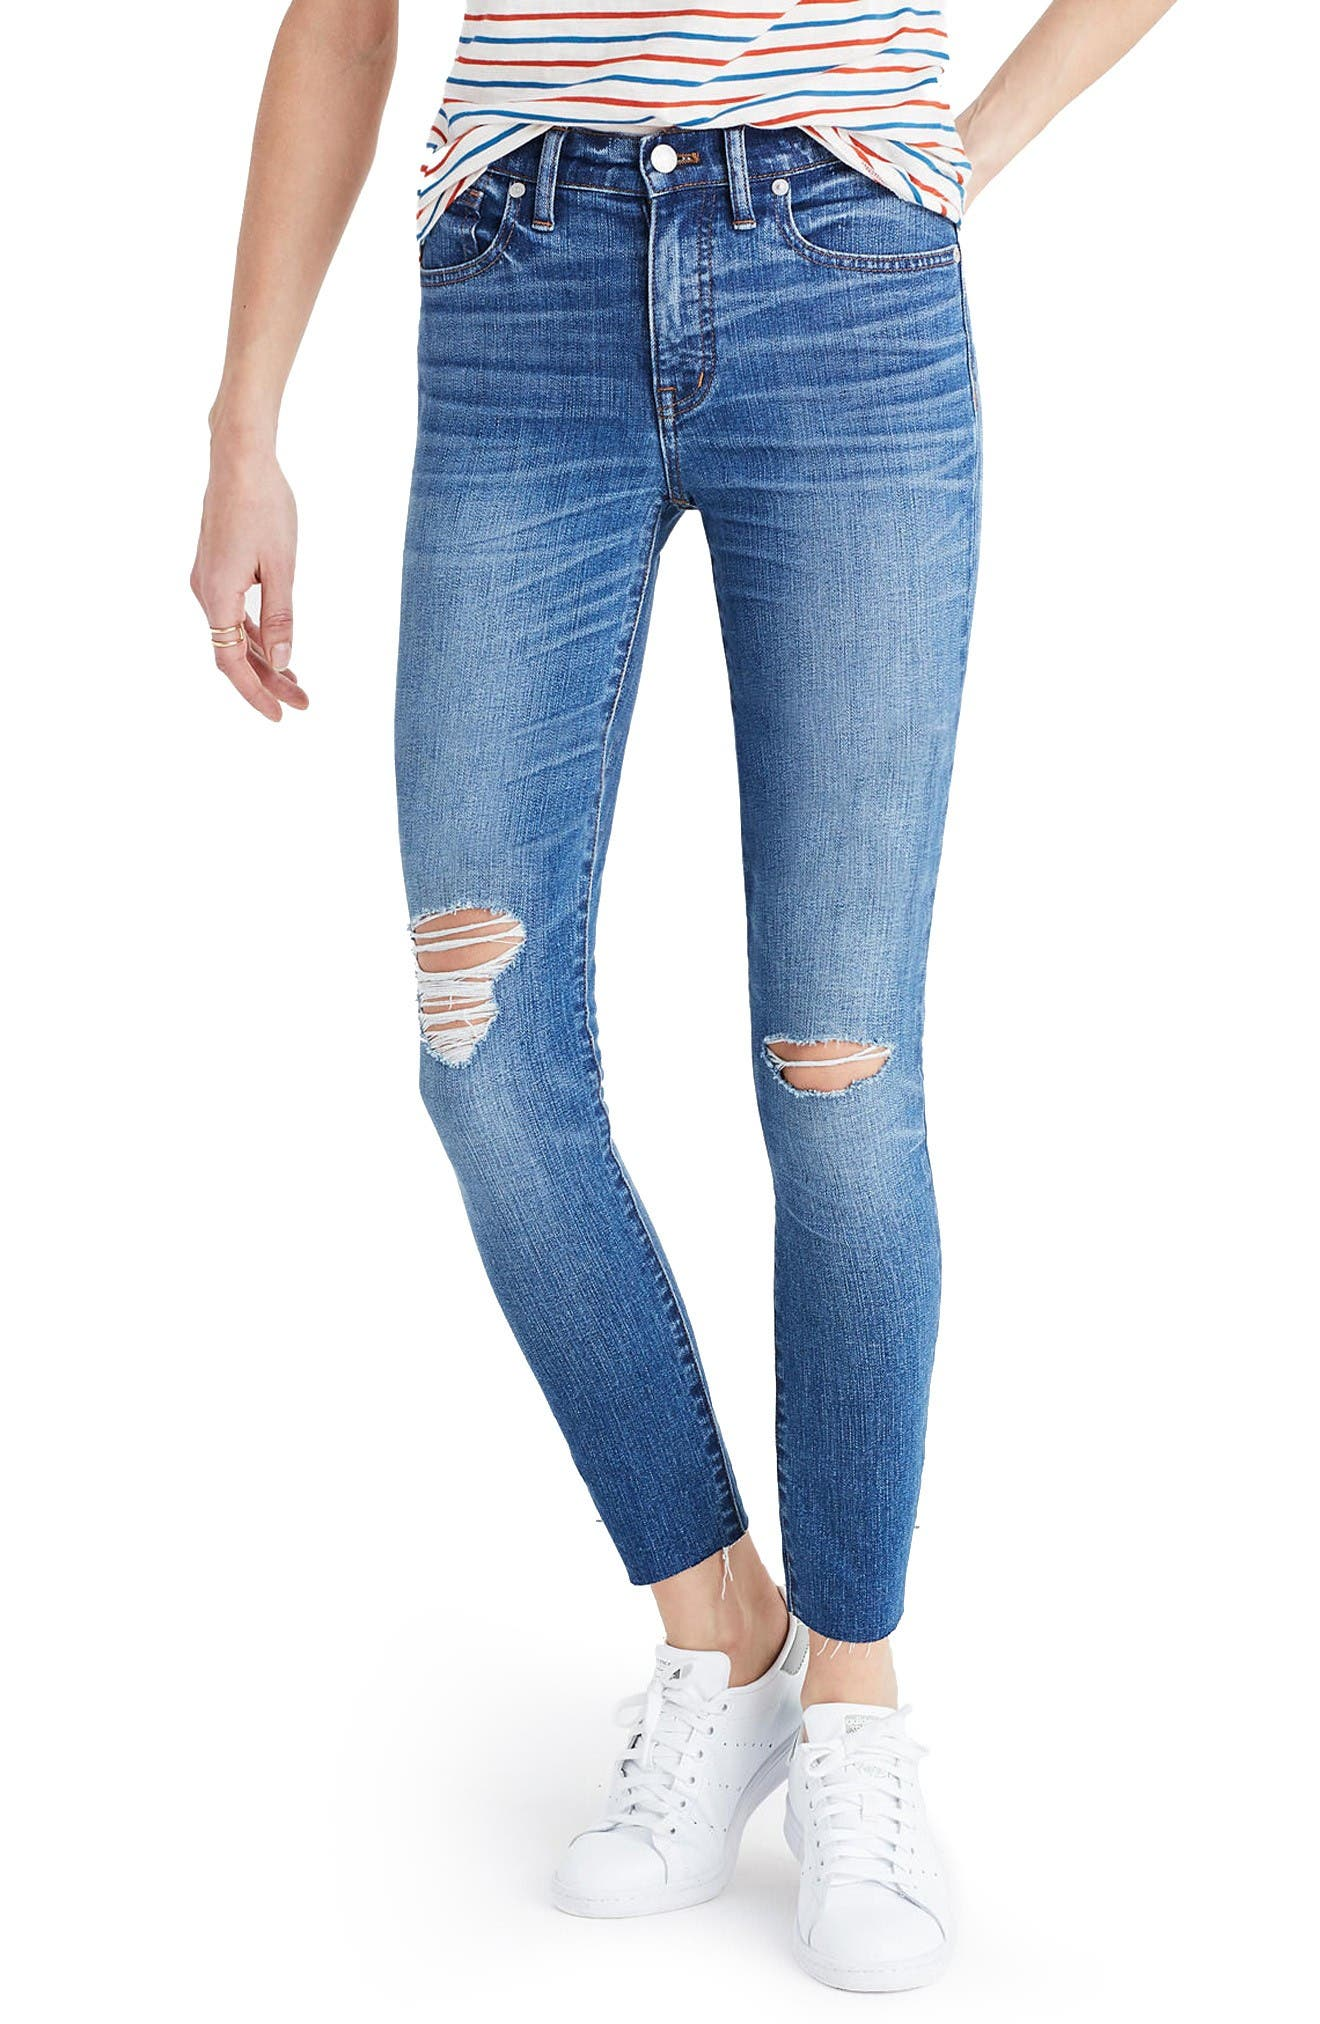 Alternate Image 1 Selected - Madewell High Rise Crop Jeans (Bruce Wash)